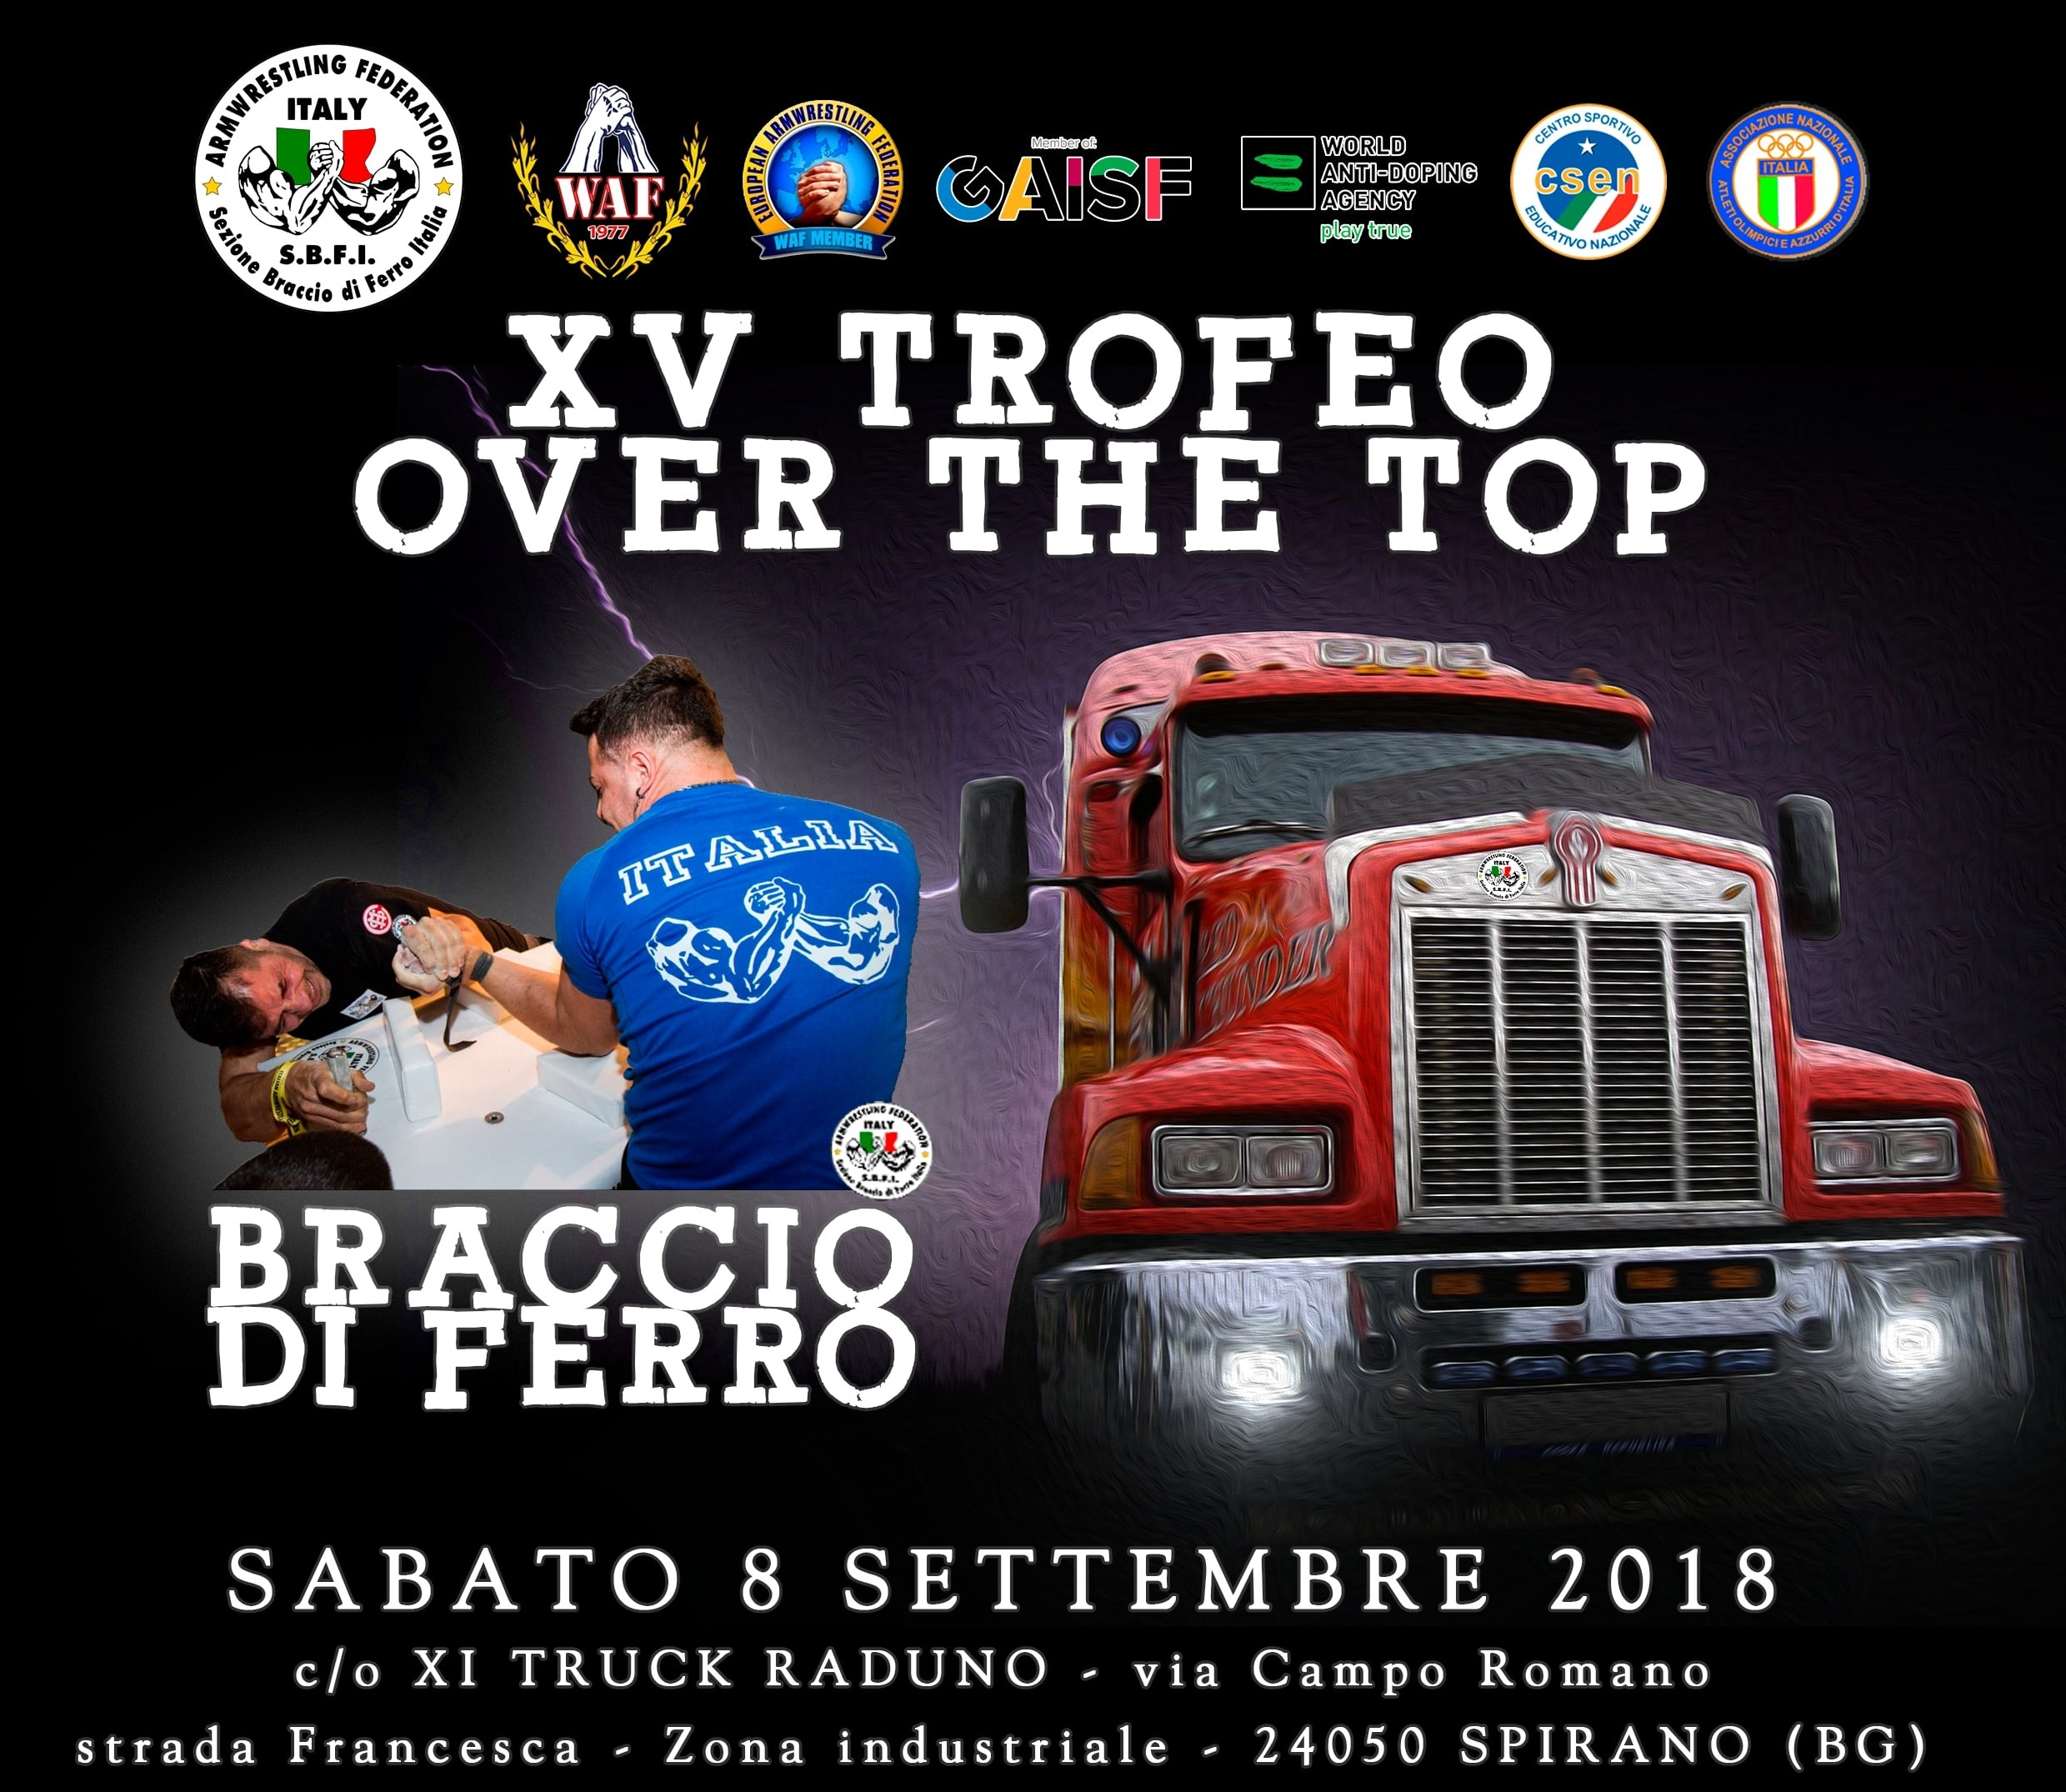 XV Trofeo Over the Top